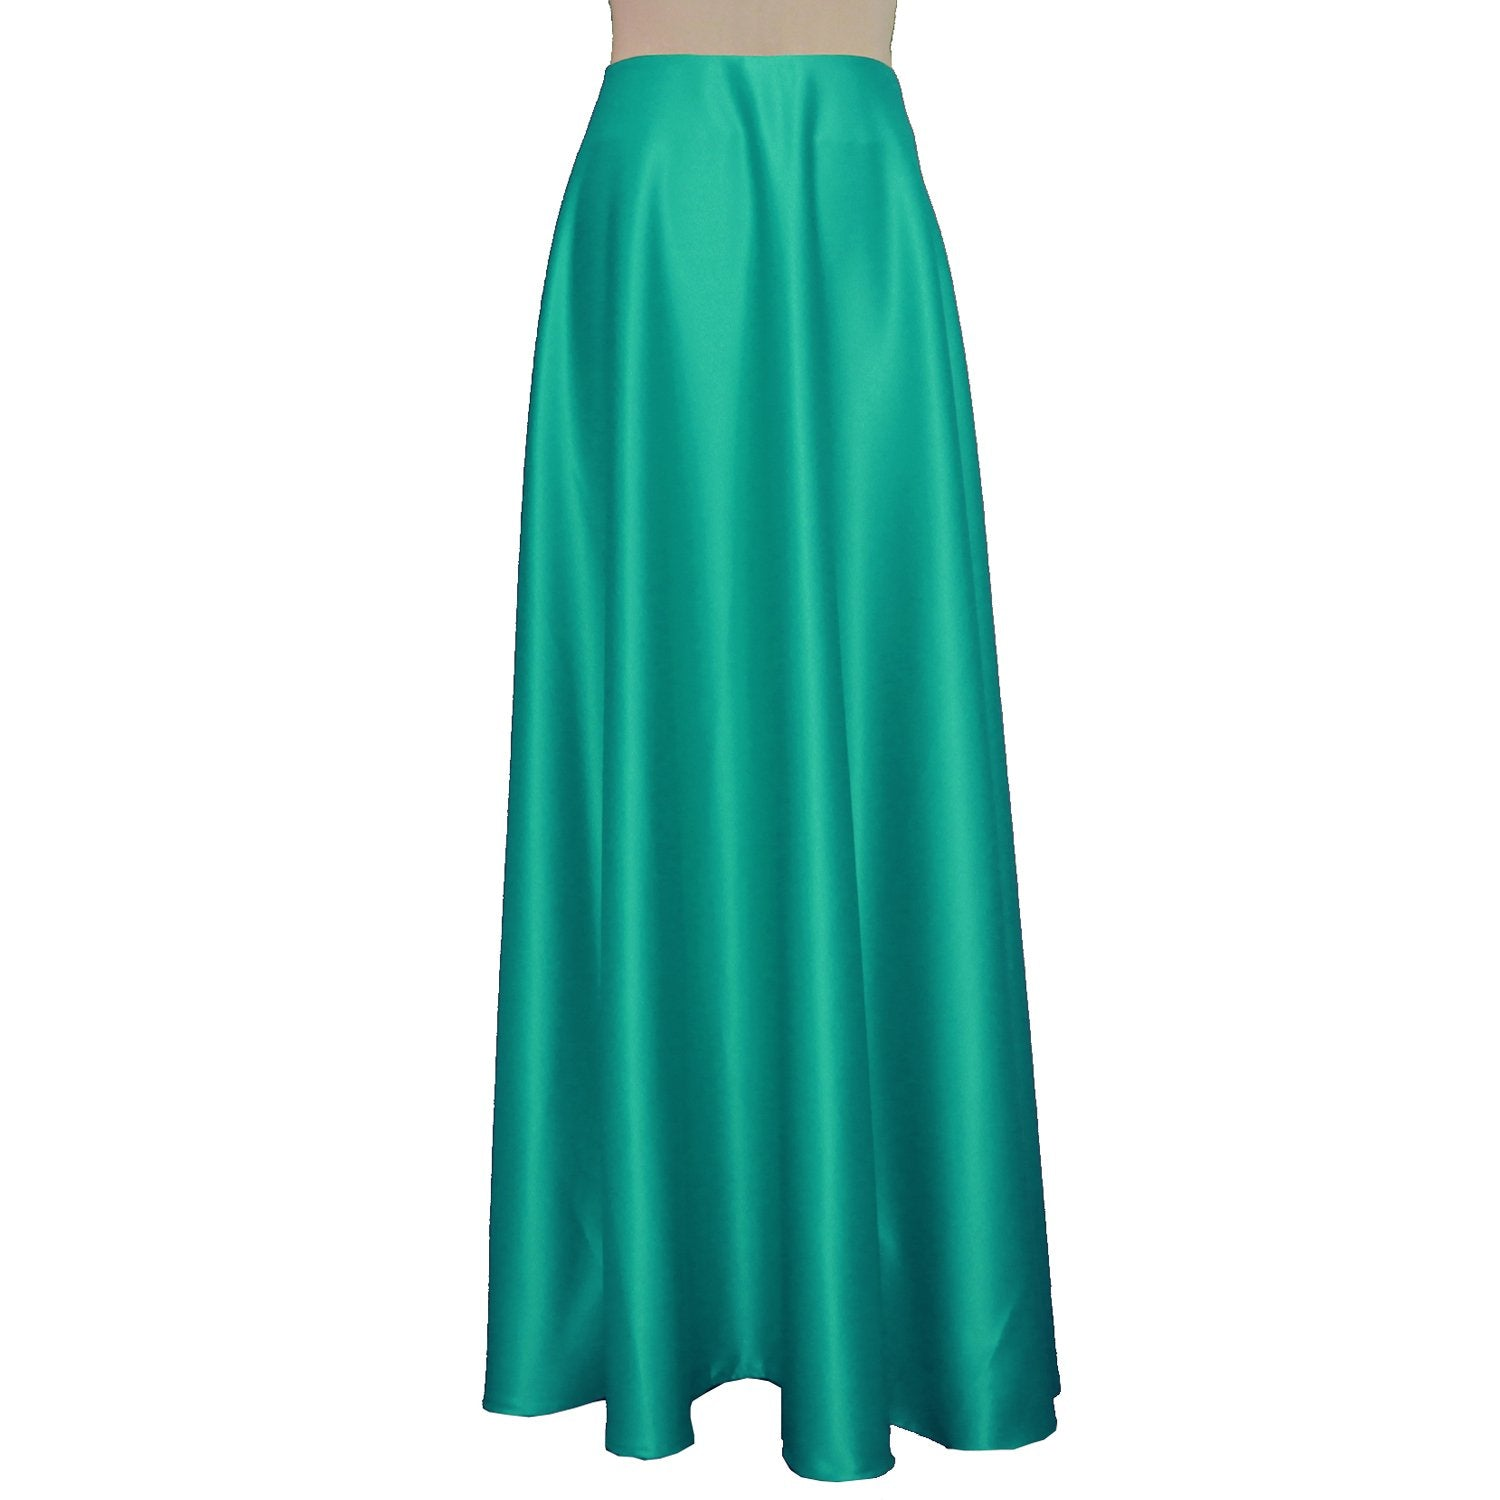 Maxi formal skirt Mint green bridesmaid wedding long skirt Duchess floor length skirt